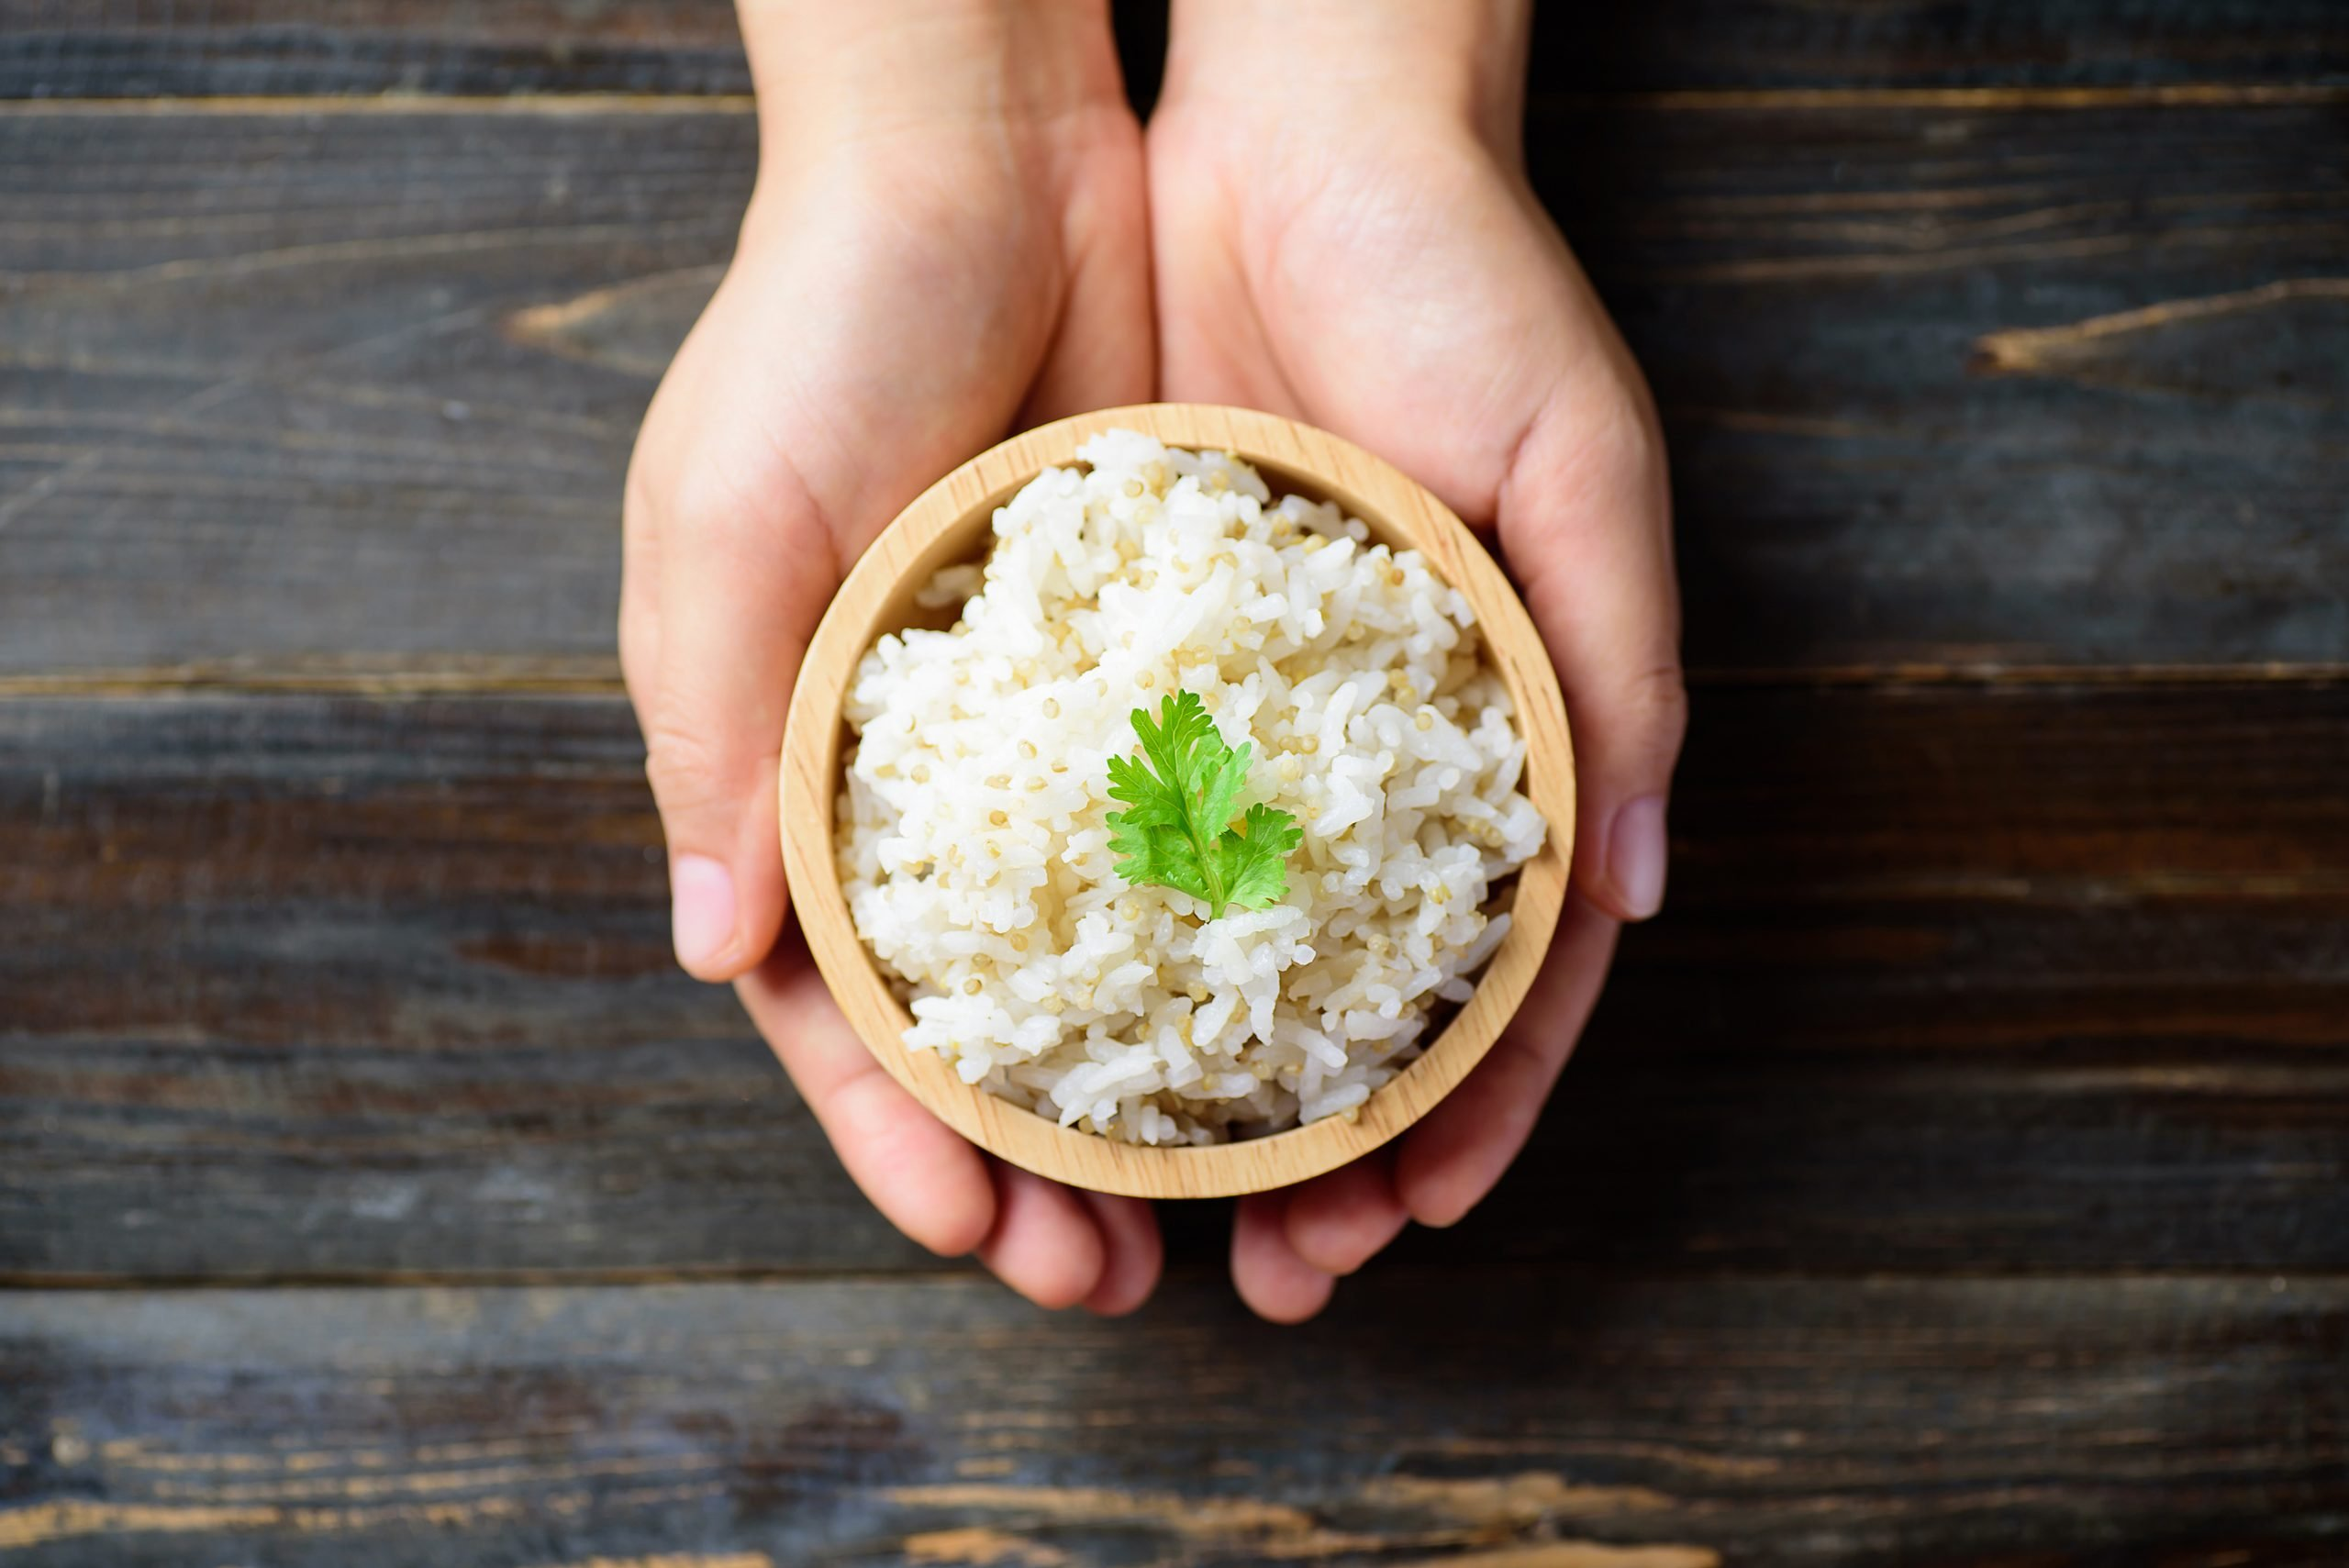 The easy, sure-fire way to make fermented rice